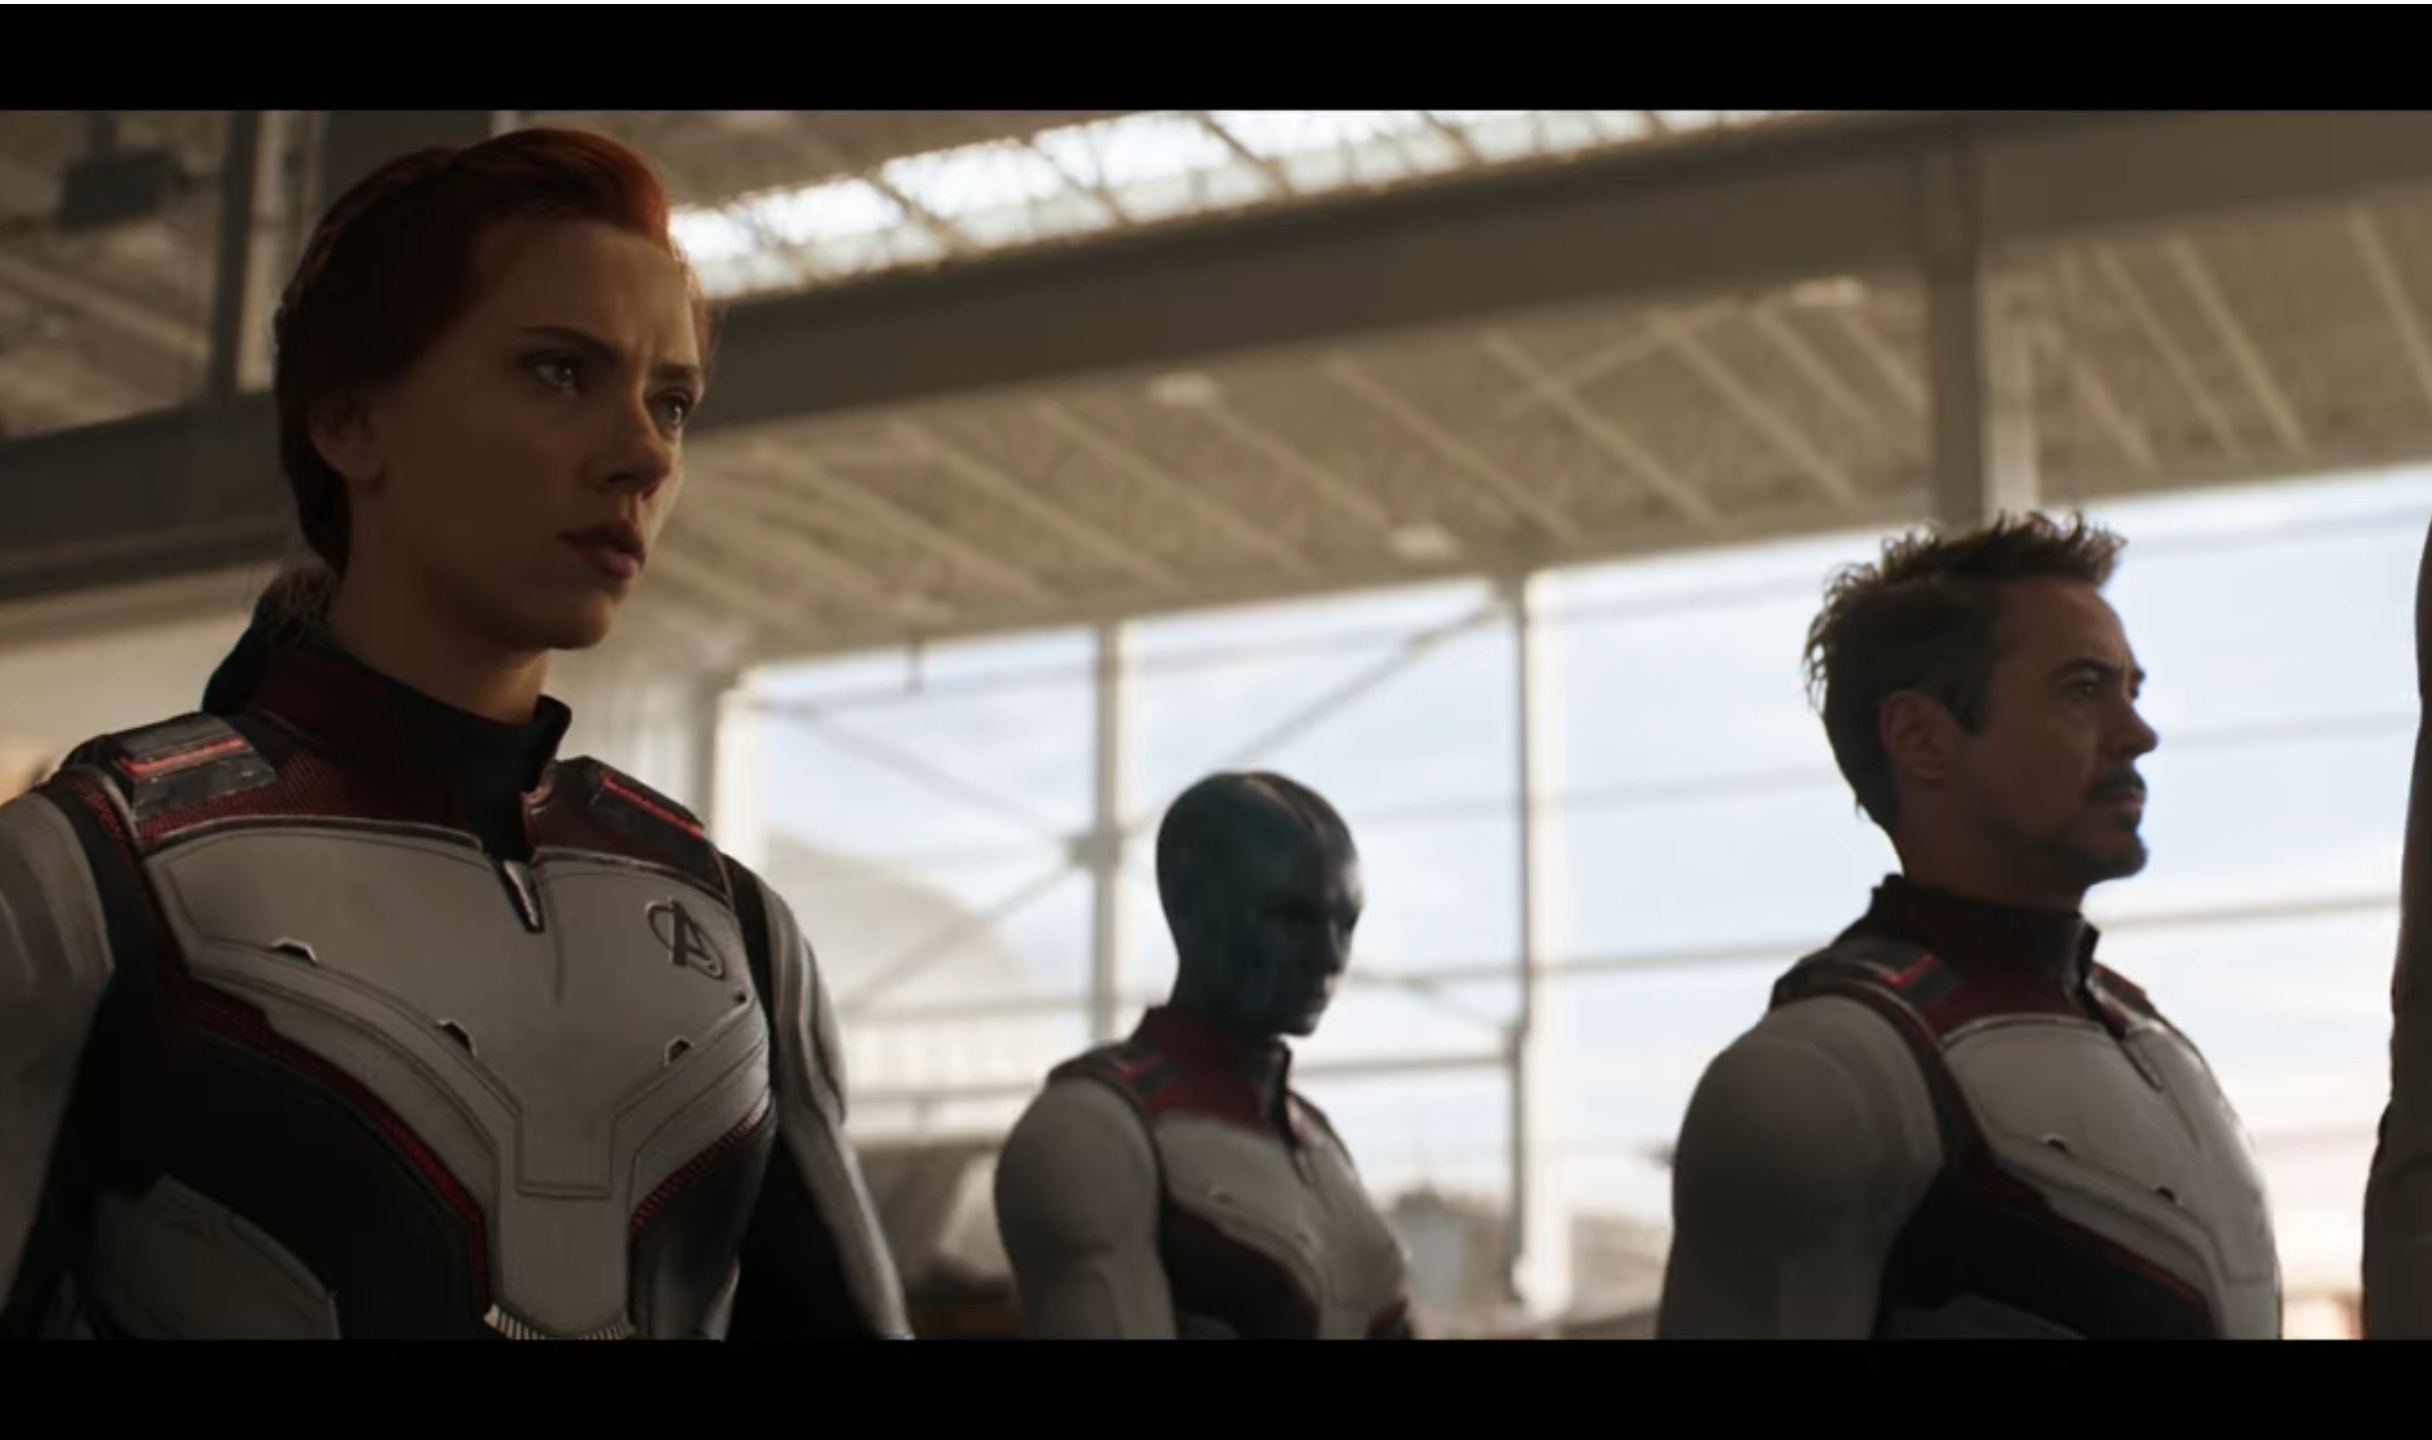 Endgame Trailer 2: Iron Man aka Tony Stark Survives in Avengers 3